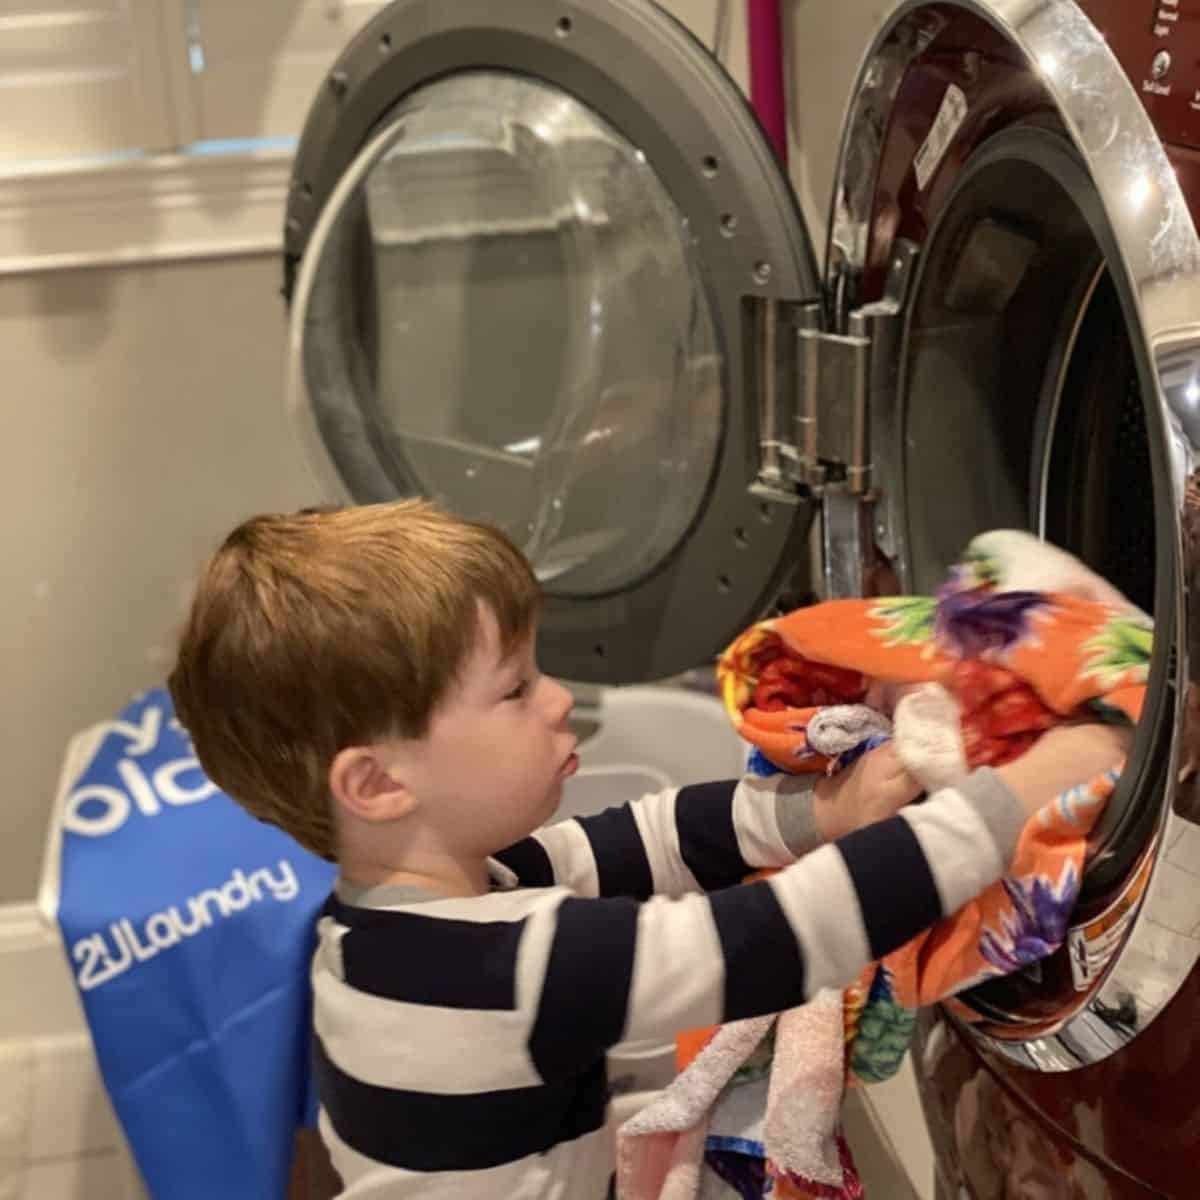 Toddler is pulling clean clothes out of the dryer